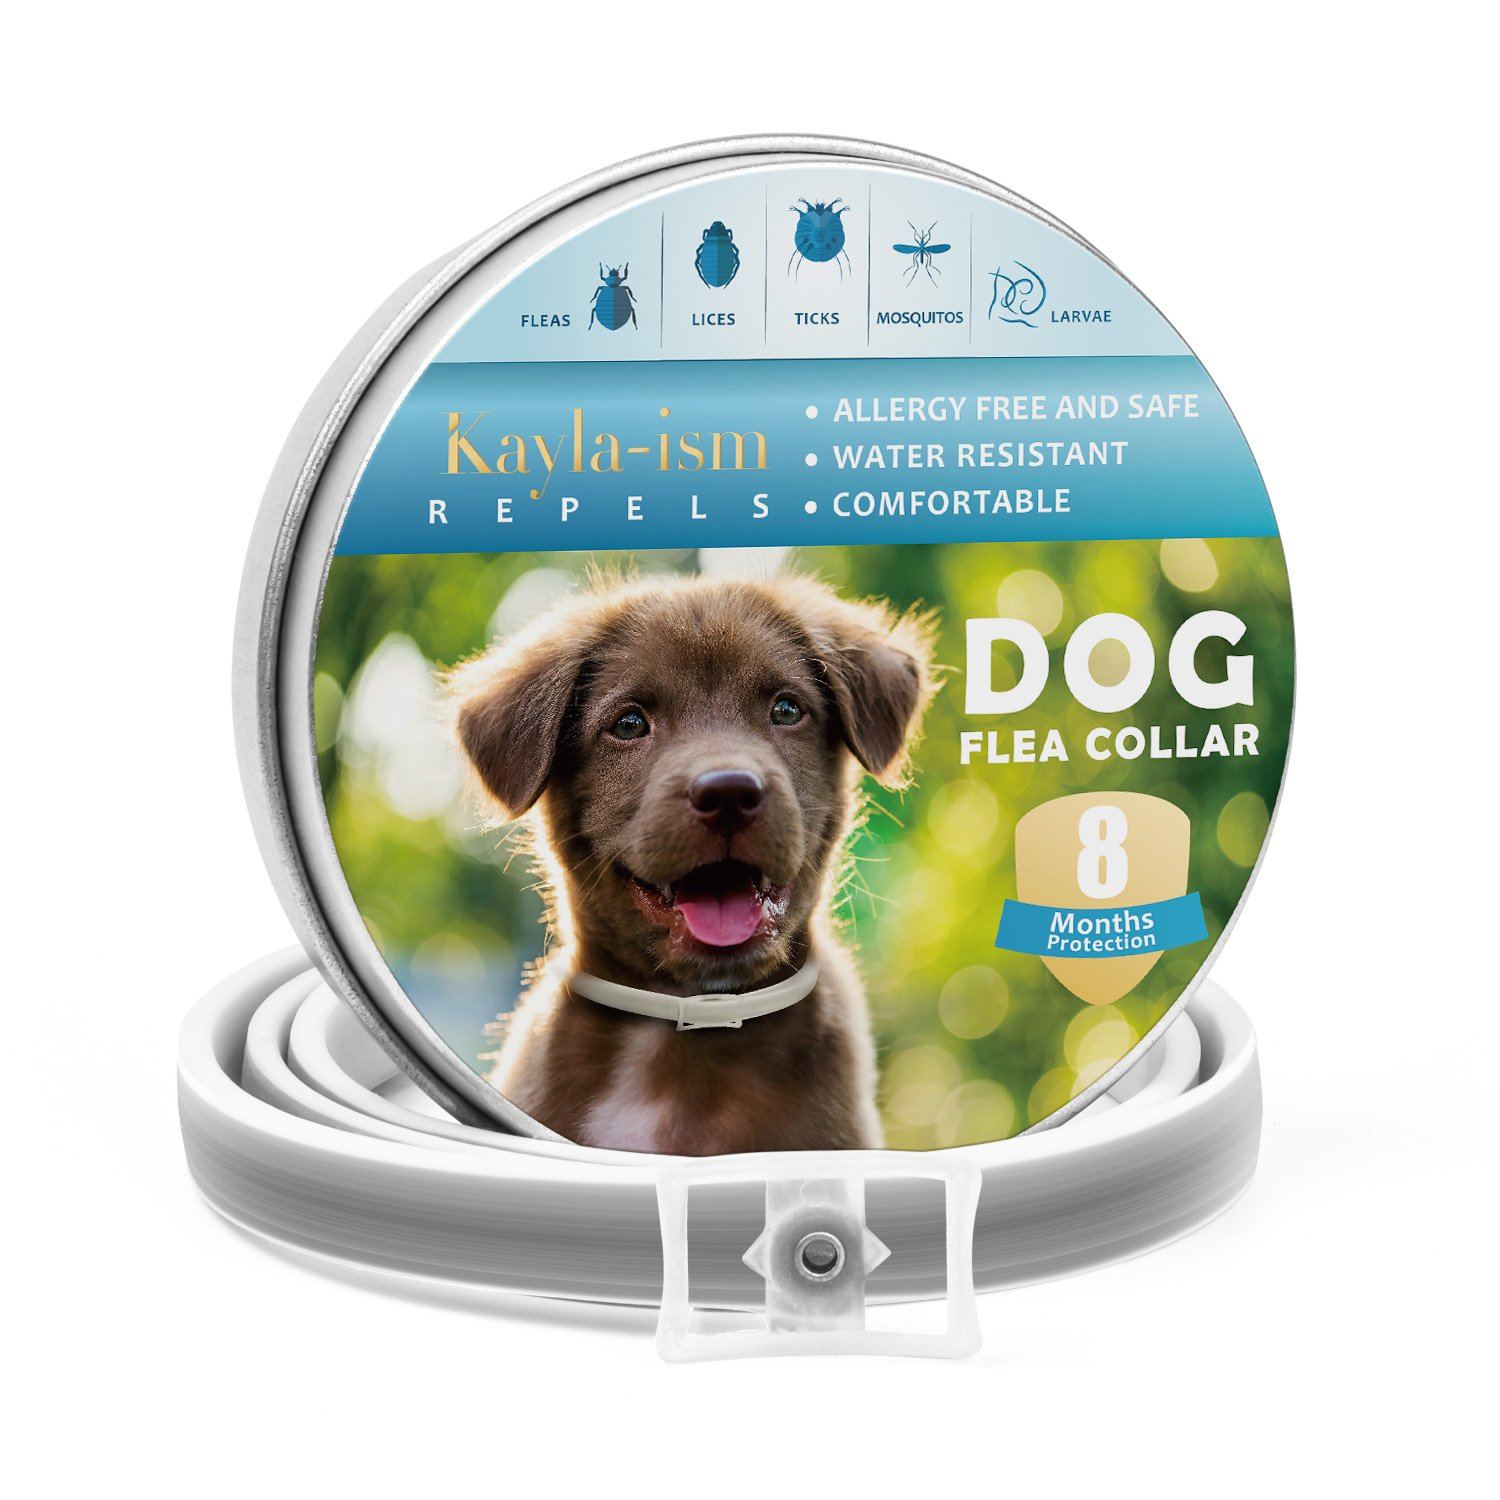 Kayla-ism Dog Flea Collar, Flea And Tick Collar For Dogs, Water-resistant, Natural And Safe Ingredients, Allergy Free, One Size Fits All, 14 Months Full Protection